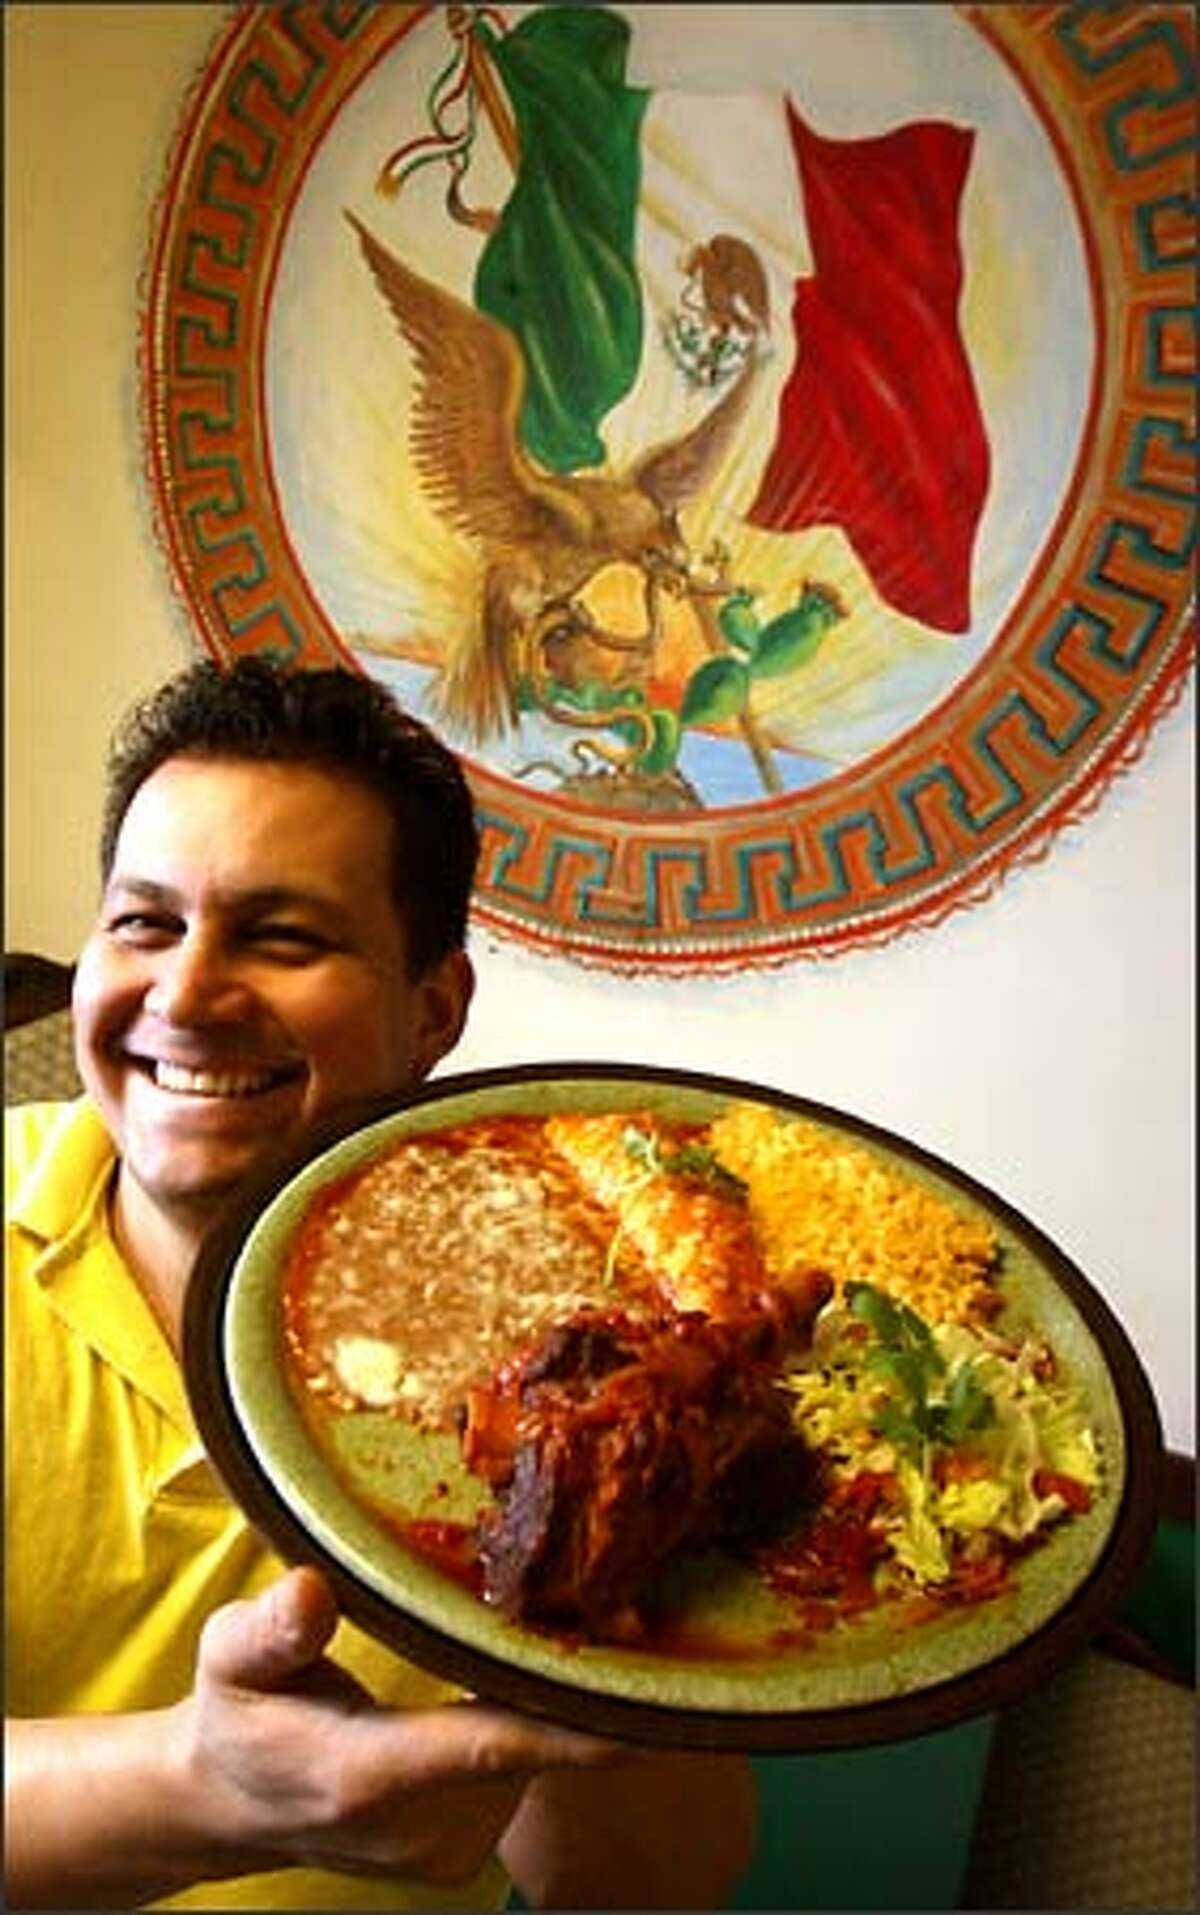 Antonio Hernandez, owner of Casa Durango, hefts a plate of lamb shank, chicken enchilada, rice and beans.